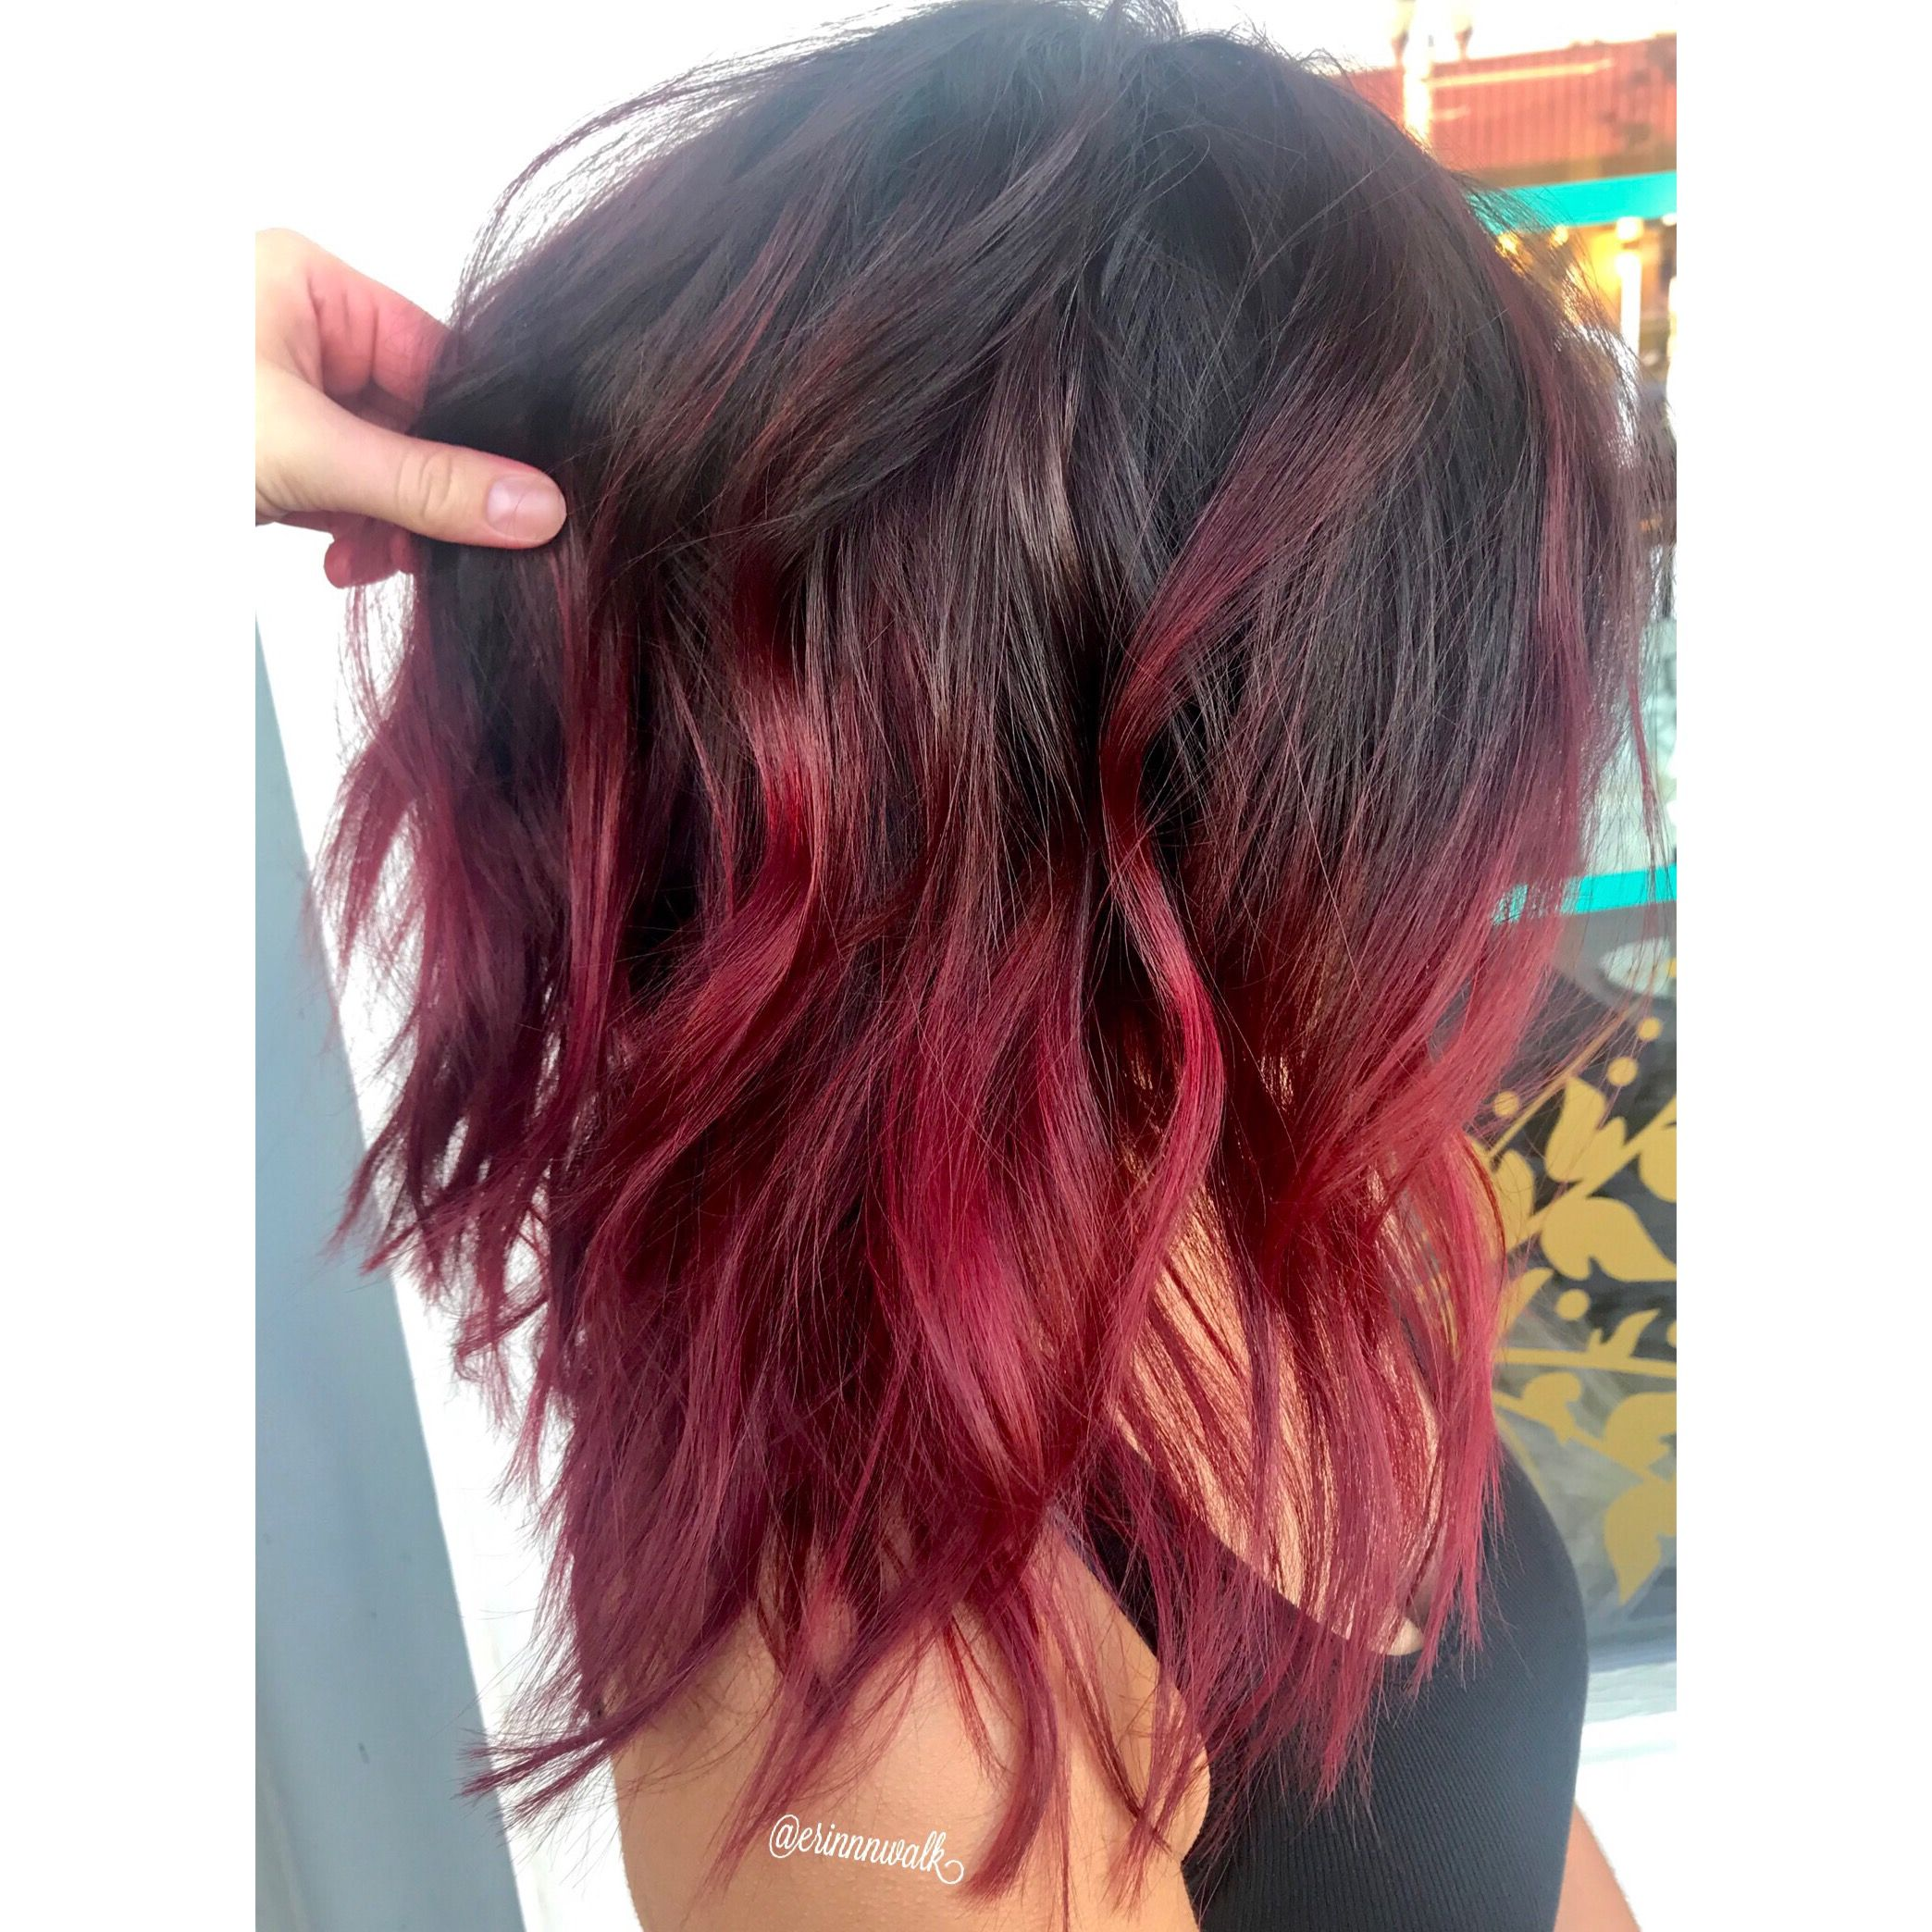 Pin By Tiny Turtle On Hair Ideas Red Ombre Hair Red Hair Tips Wine Hair